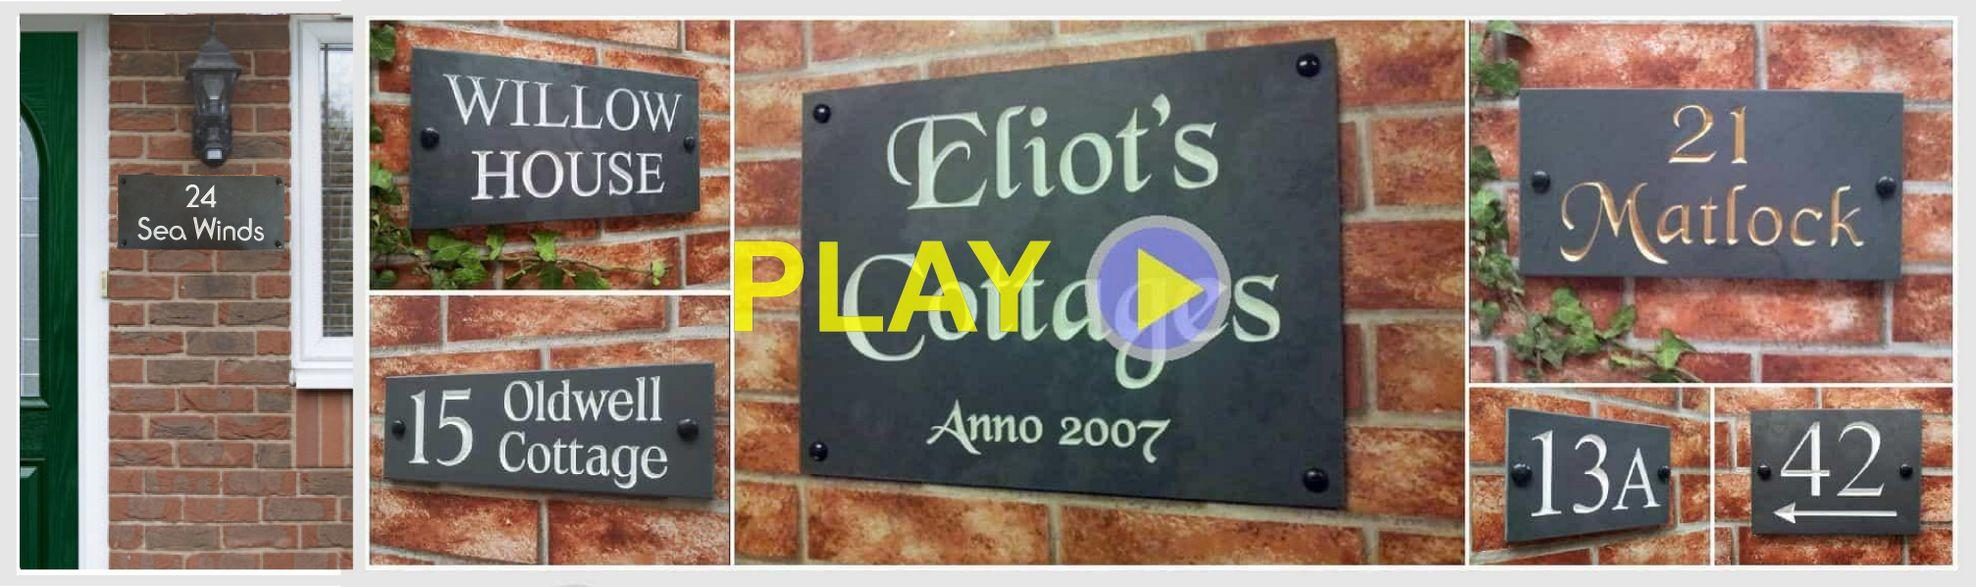 Smooth slate house signs by Yoursigns Ltd, UK